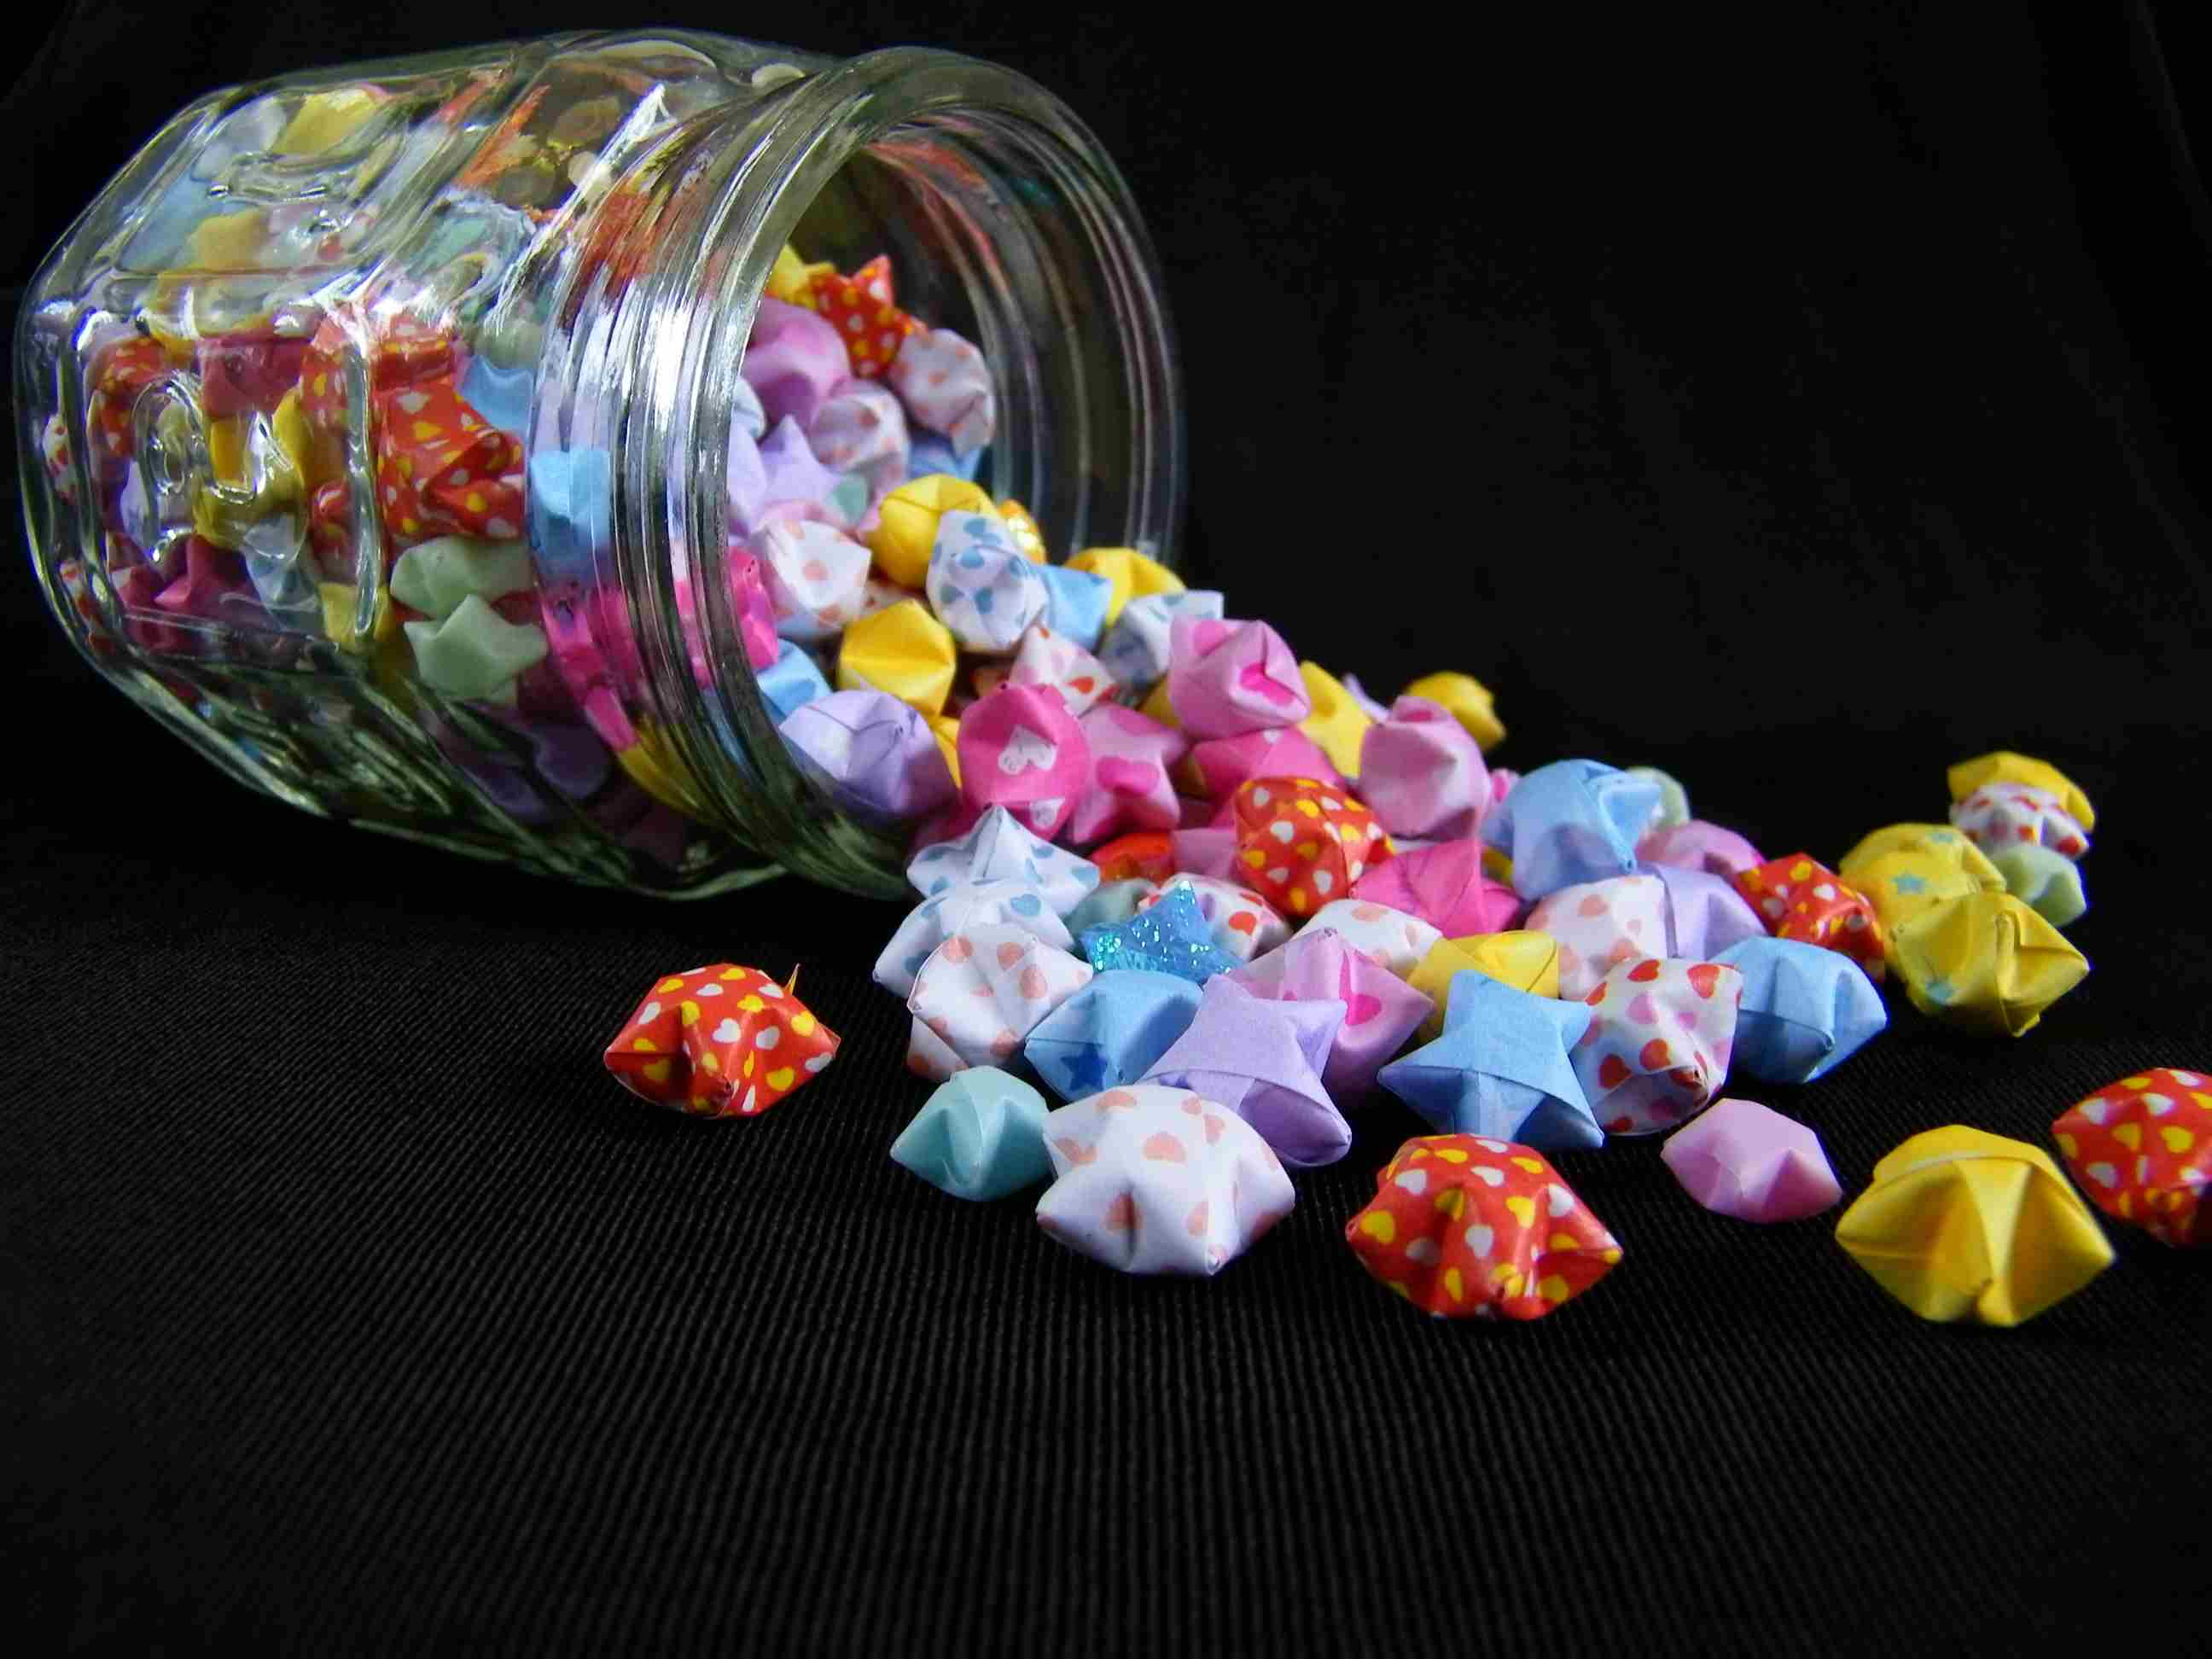 Origami stars spilled out of jar